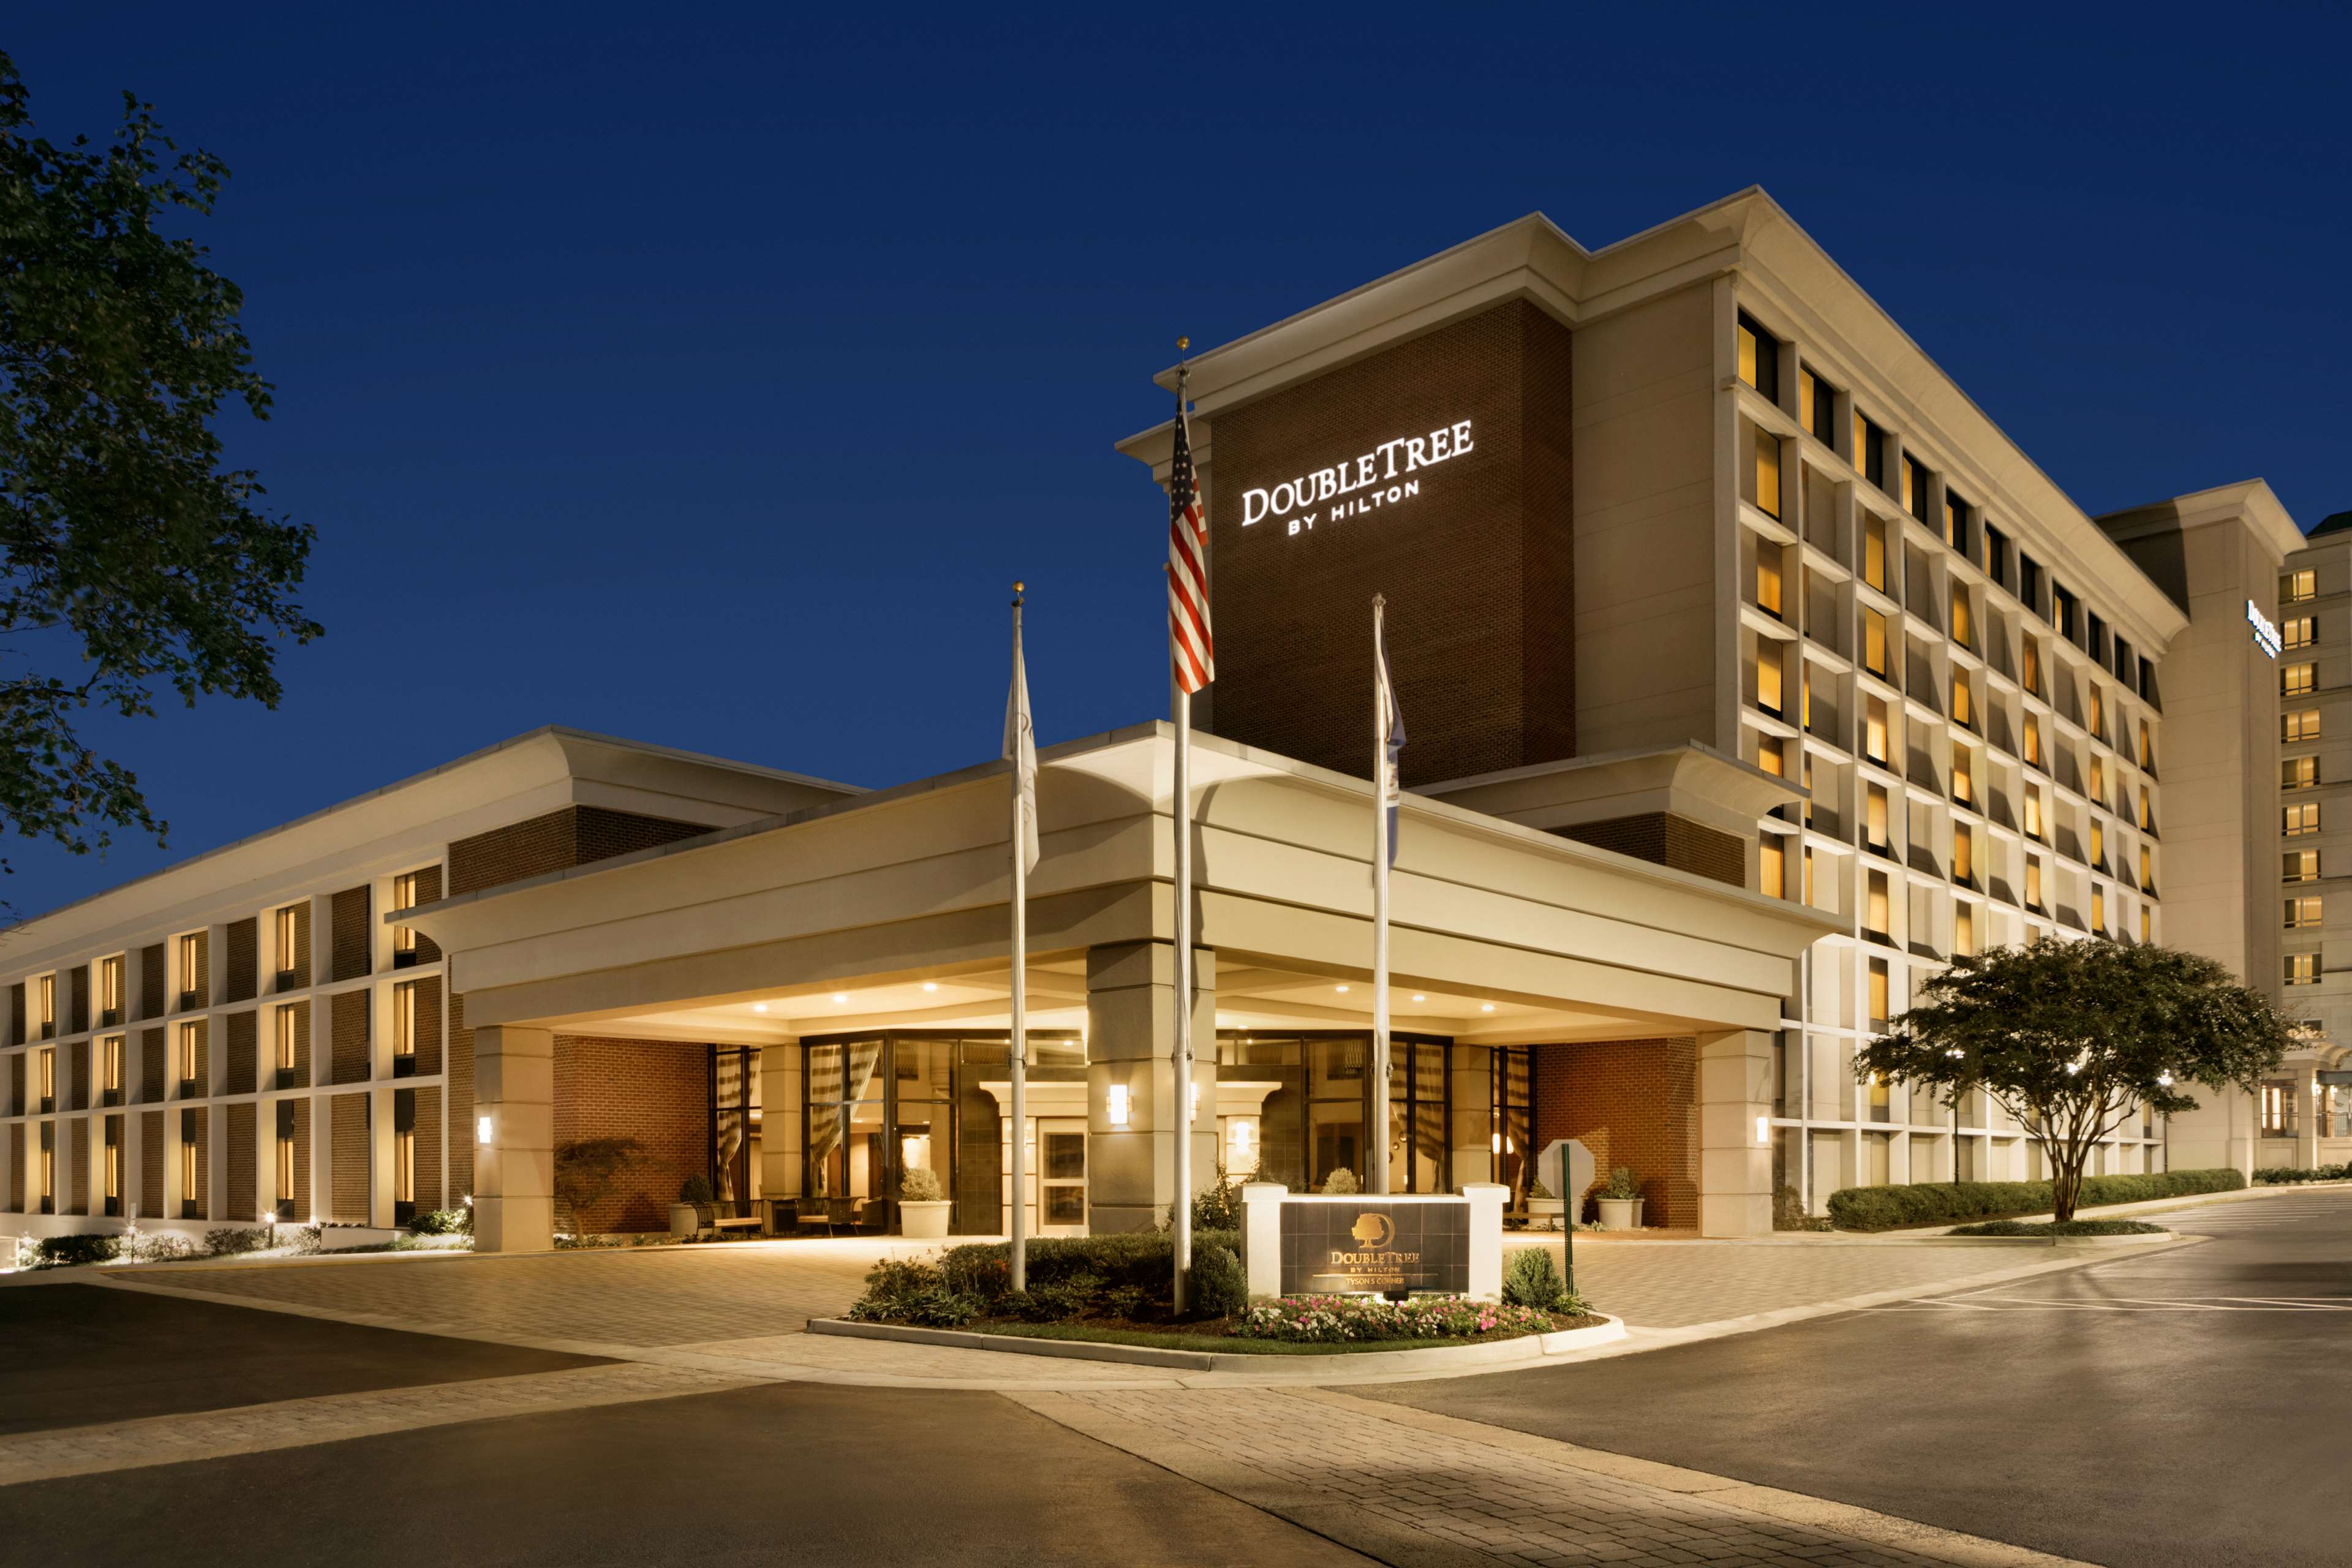 DoubleTree by Hilton McLean Tysons image 3